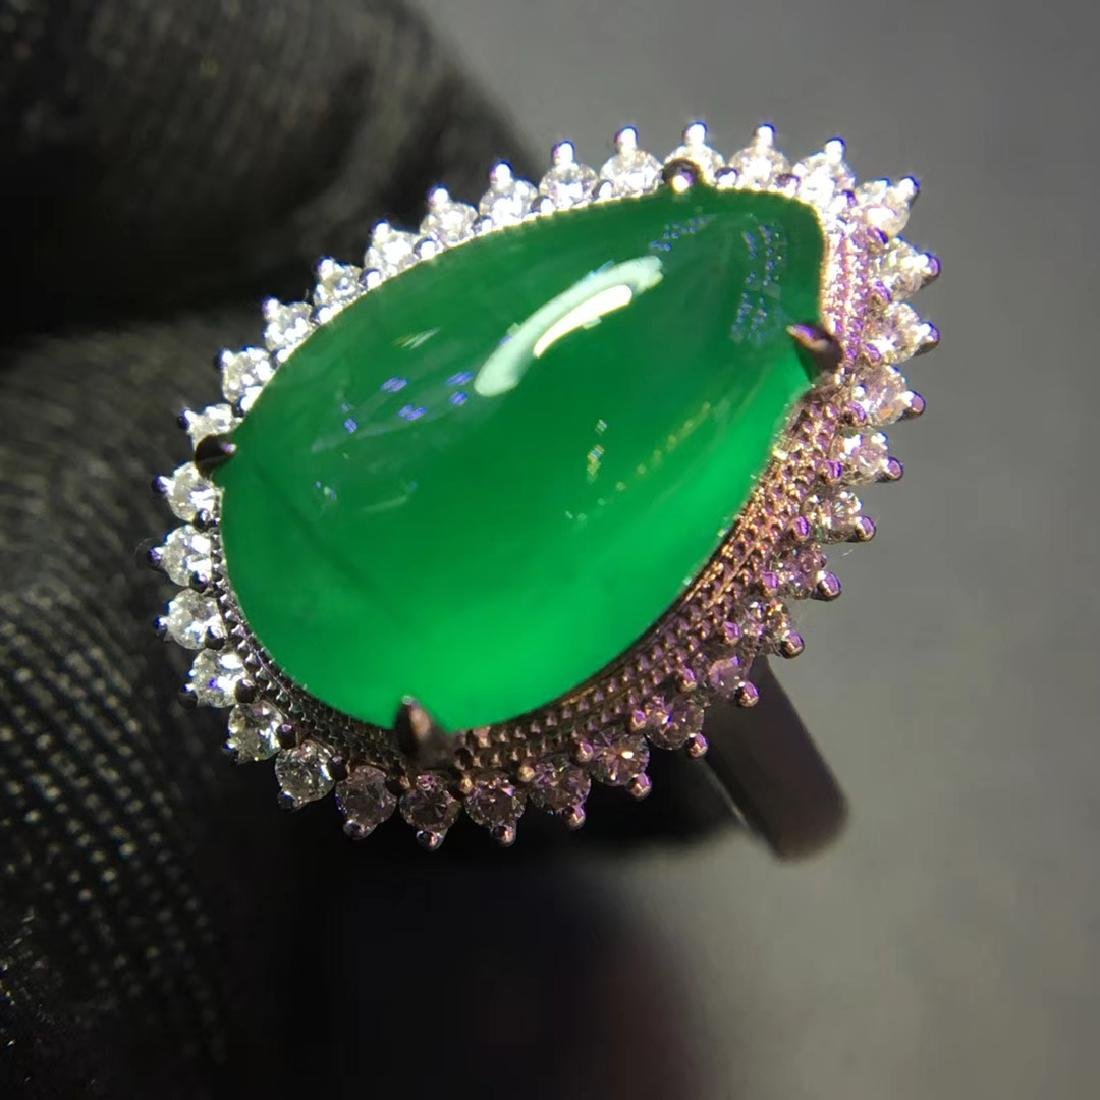 5ct Emerald Ring in 18kt Gold - 2